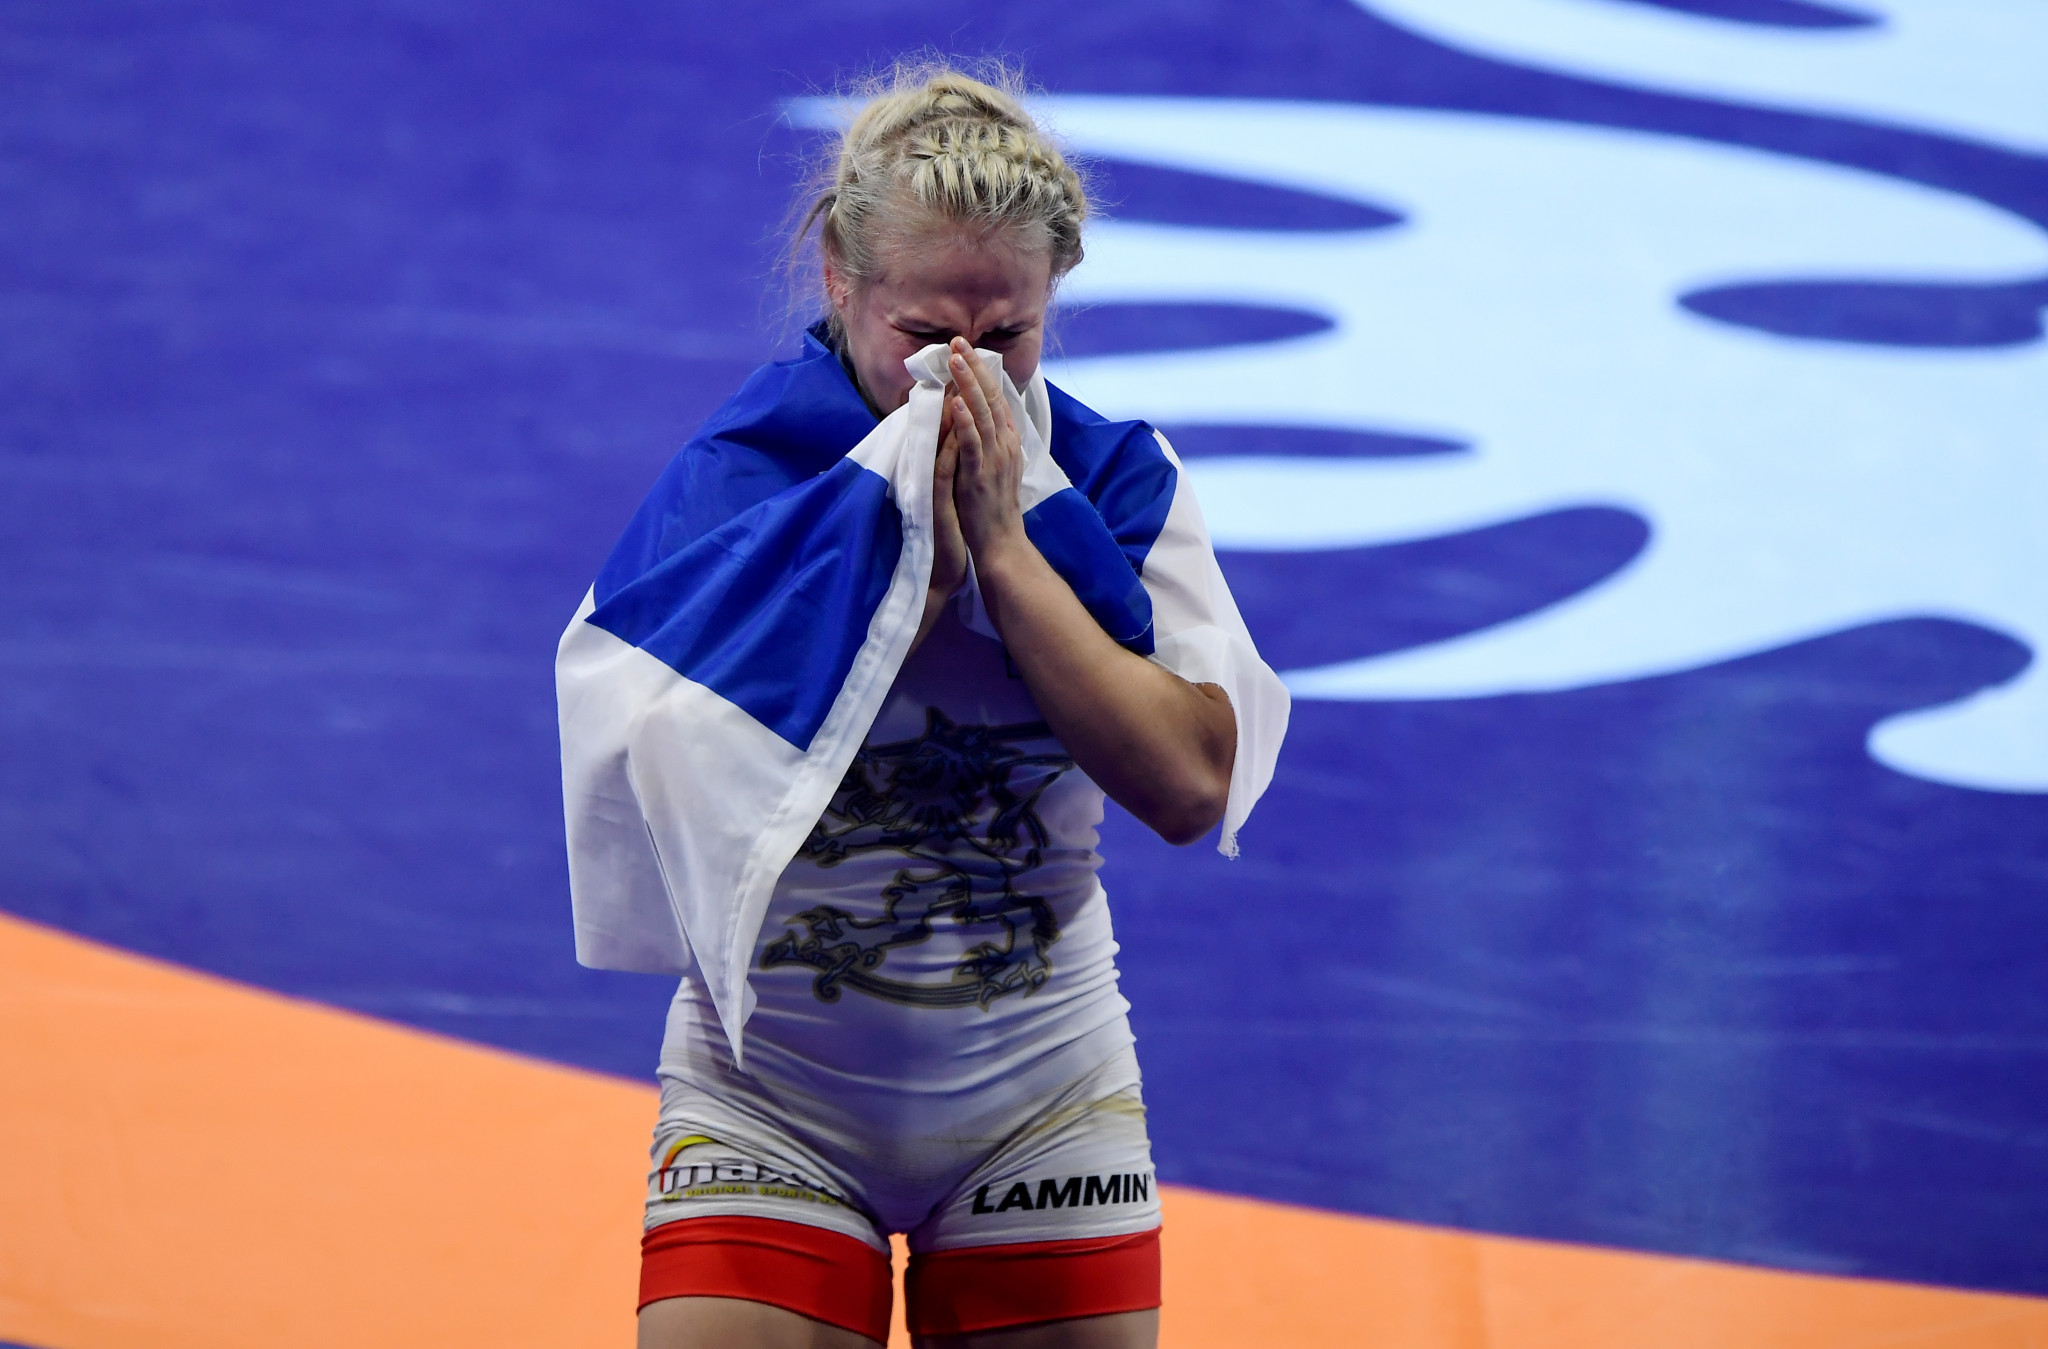 Finland's Petra Olli won 62kg gold after a last second takedown from her opponent sparked confusion ©Getty Images